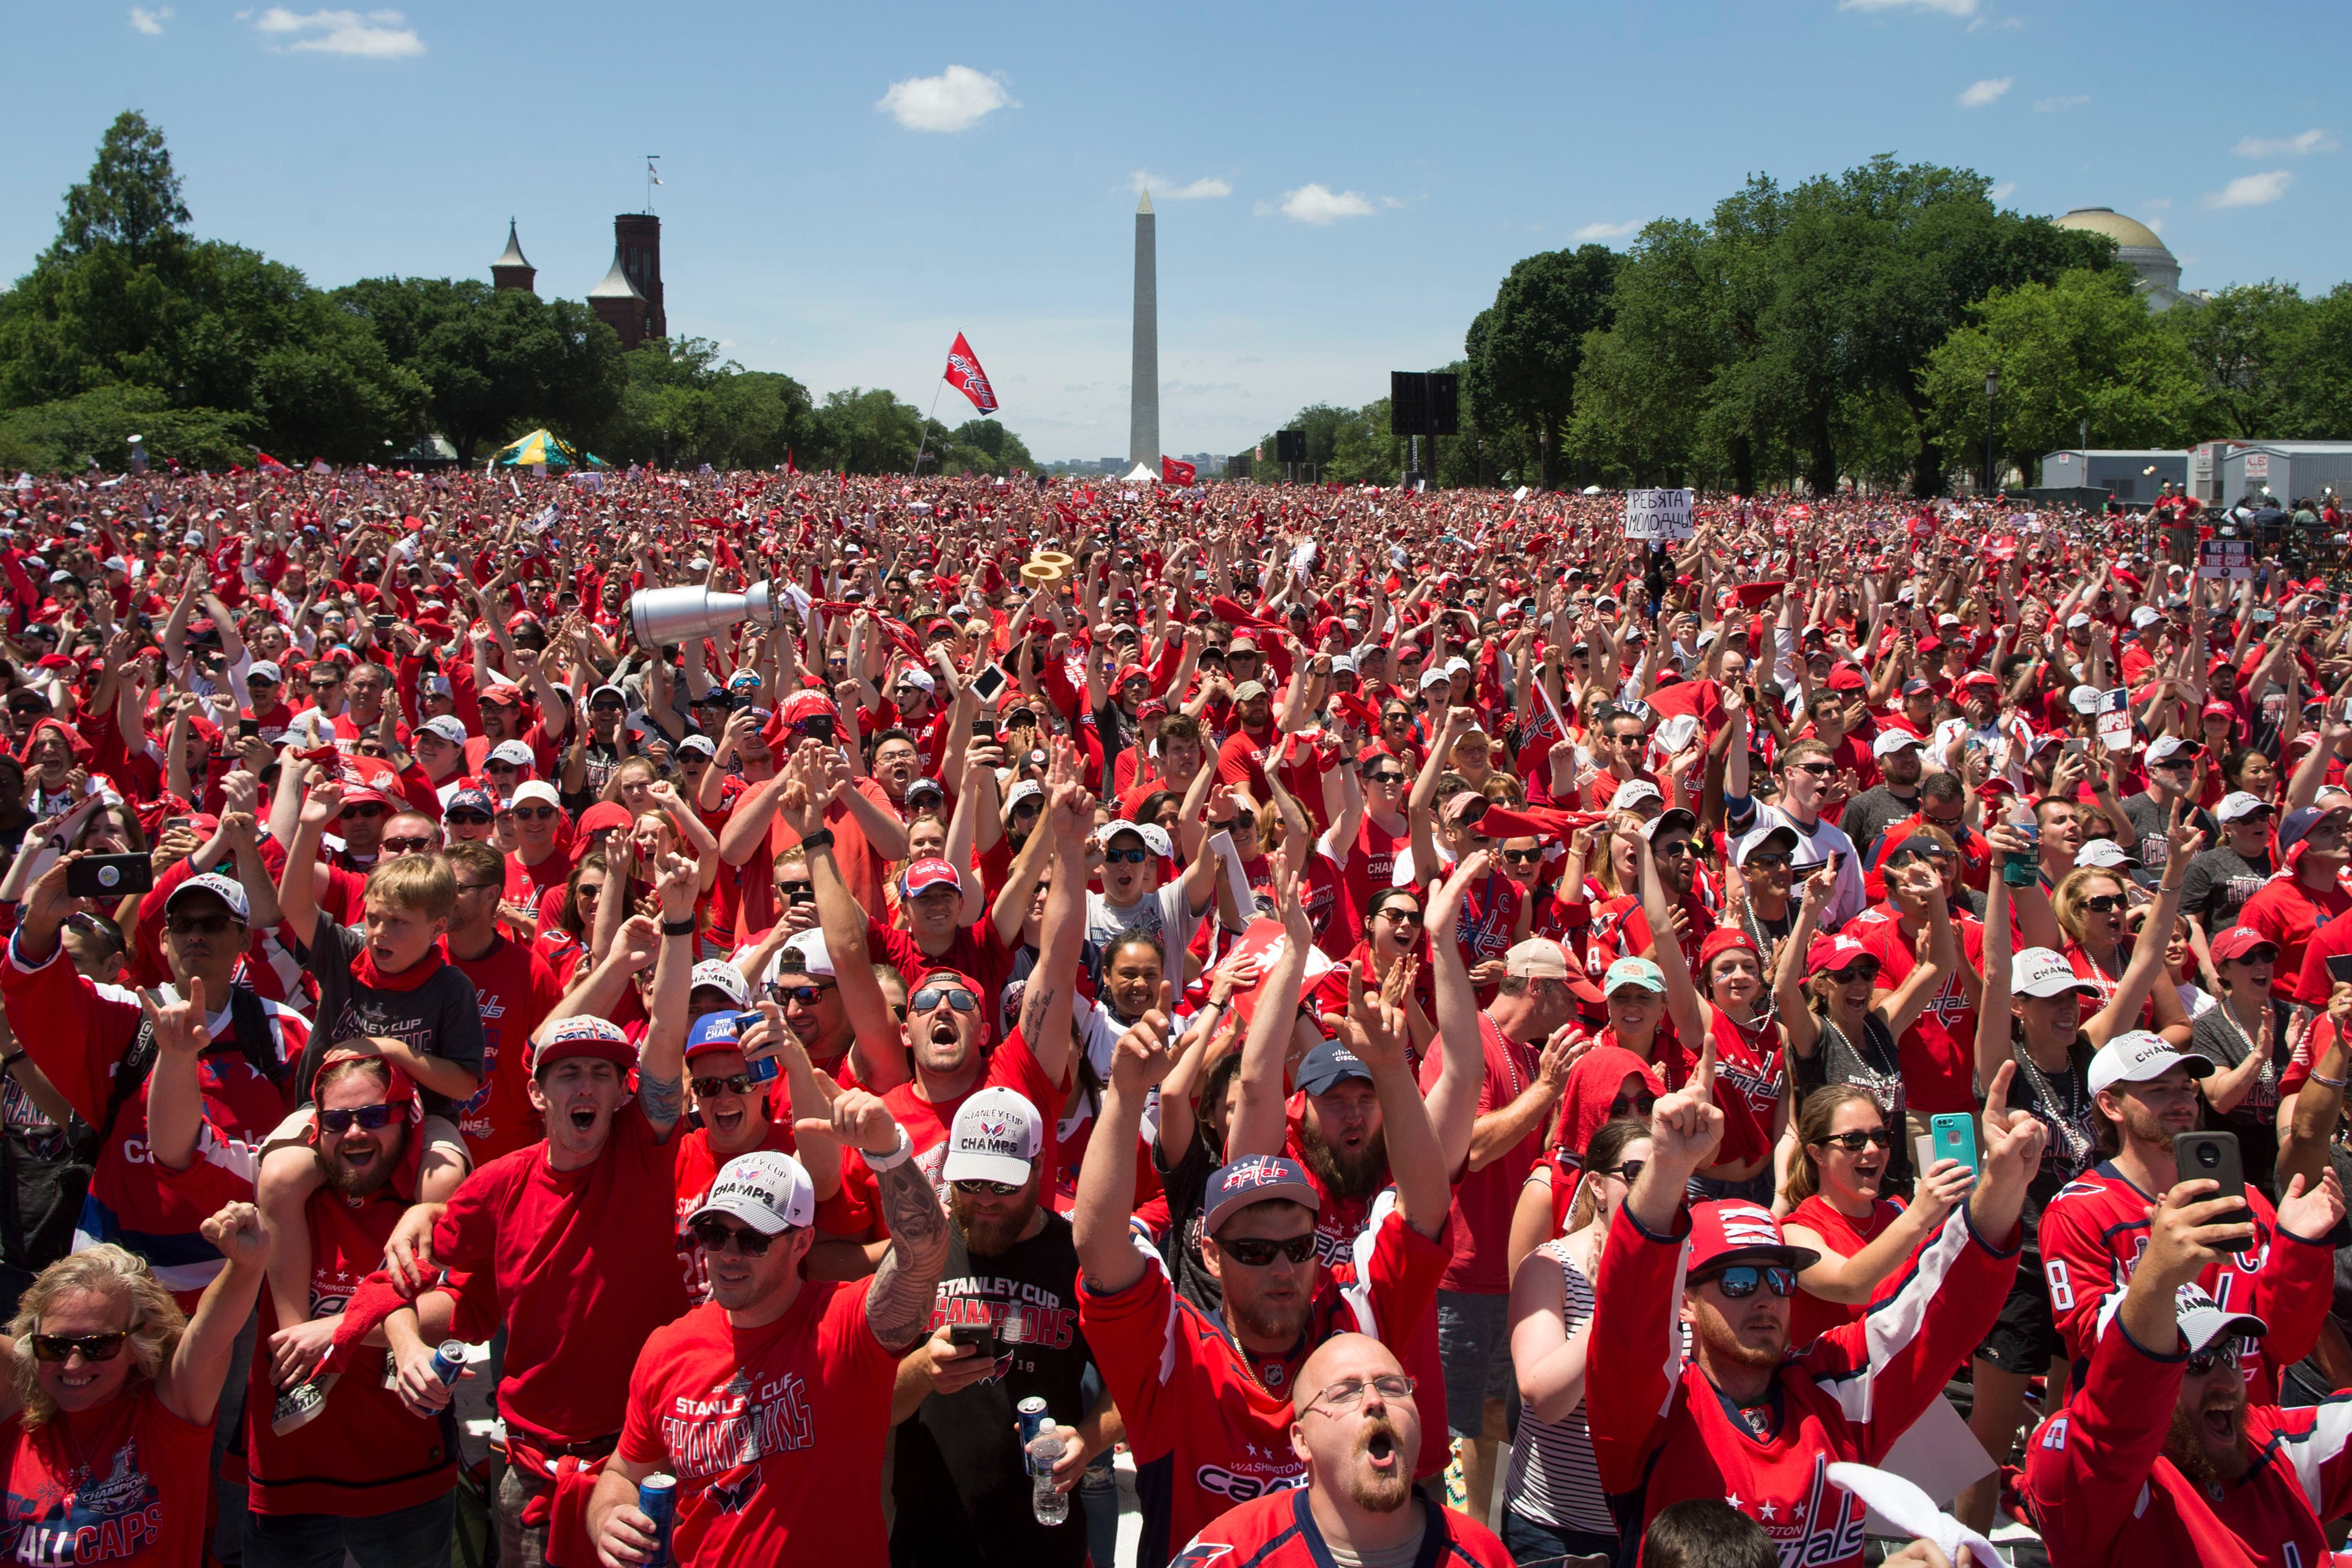 14a6f9f4b7b Thousands of fans cheer during a victory celebration for the 2018 Stanley  Cup champion Washington Capitals on the National Mall in Washington